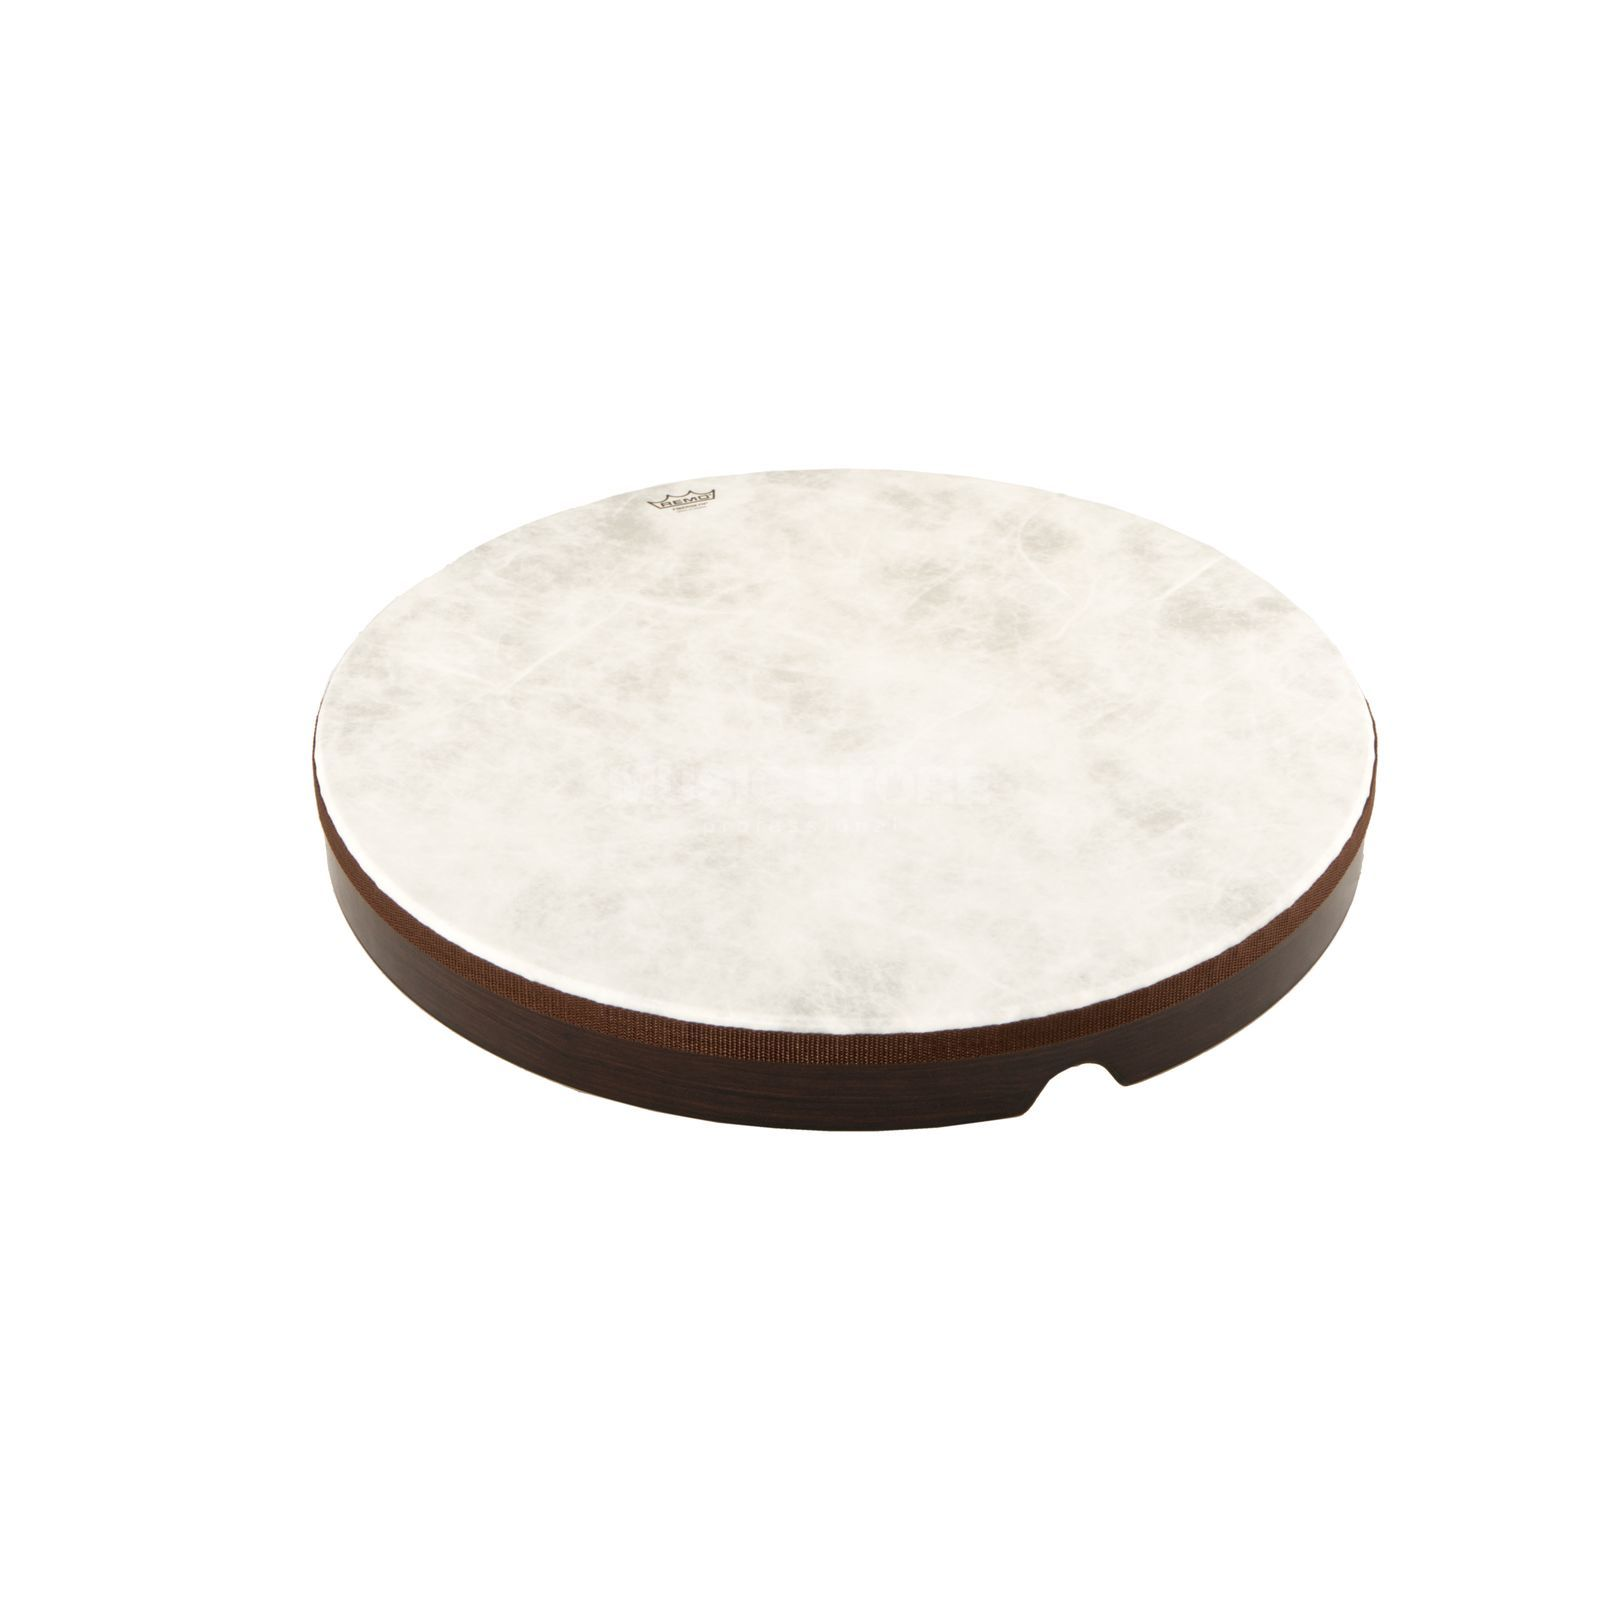 "Remo Frame Drum HD-8522-00, 22""x2.5"", Fiberskyn 4 Product Image"